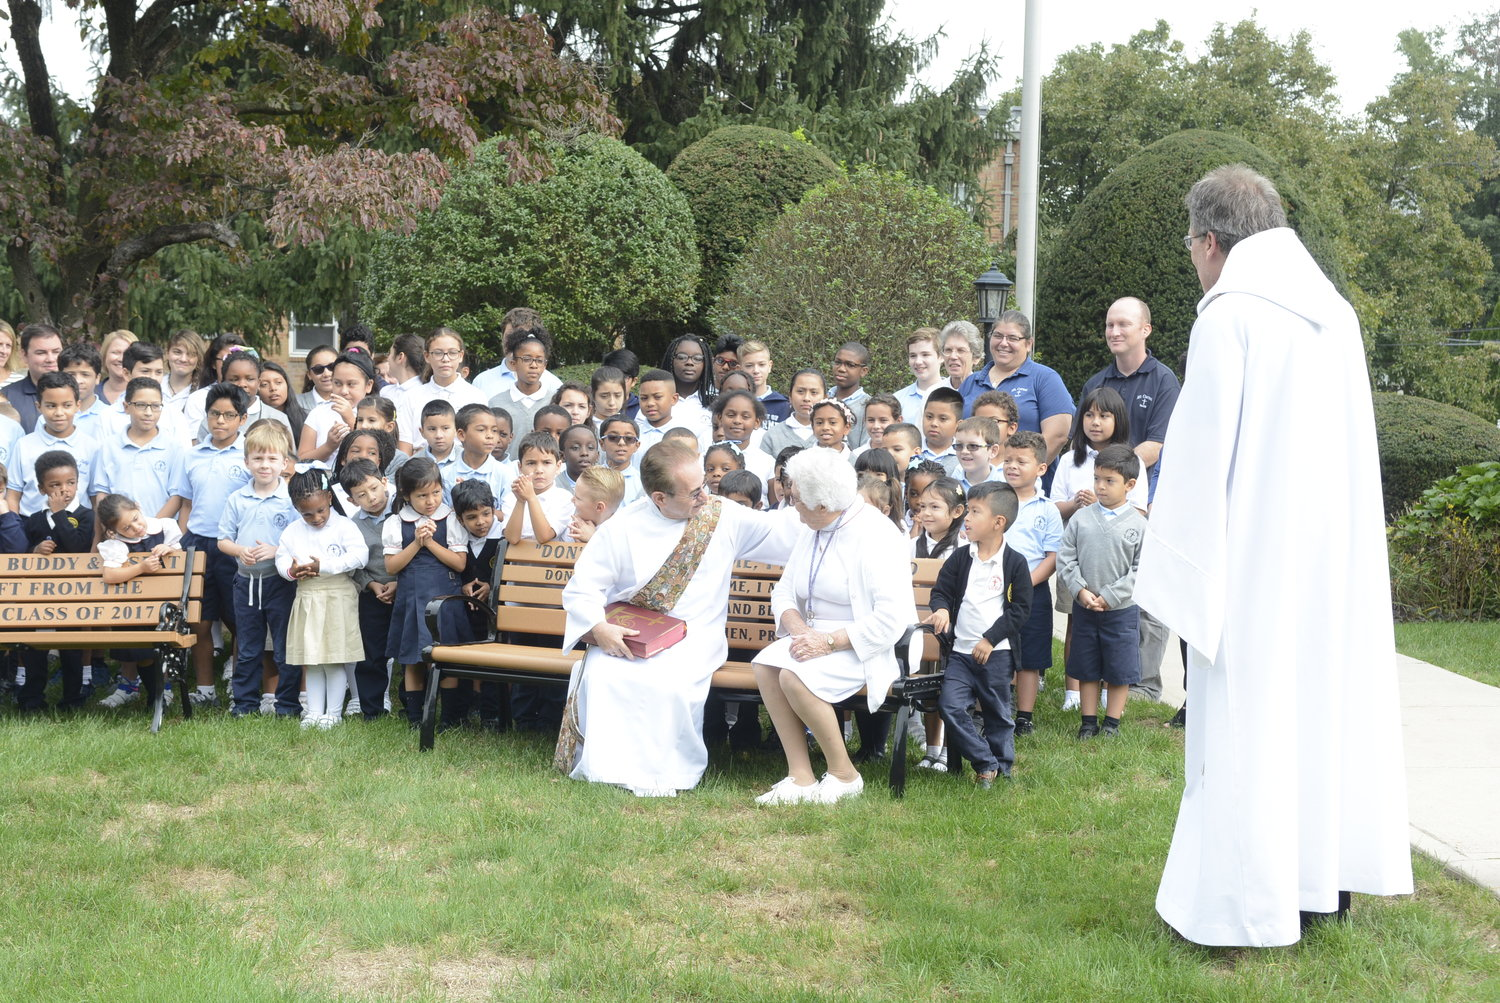 Oct 02, 2018  Our Lady of Mount Carmel School in Elmsford, NY takes proactive steps to fight isolation and promote inclusion by blessing the three Buddy Benches to be installed on their school playground. If a child sits on a bench alone, it is a signal to the other kids to ask him or her to play. With pastor Fr Robert Norris, Ph.D., deacon Daniel Moliterno, principal Sr Mary Stephen Healey, R.D.C.  Patrick Salgado, 8th gr announces day